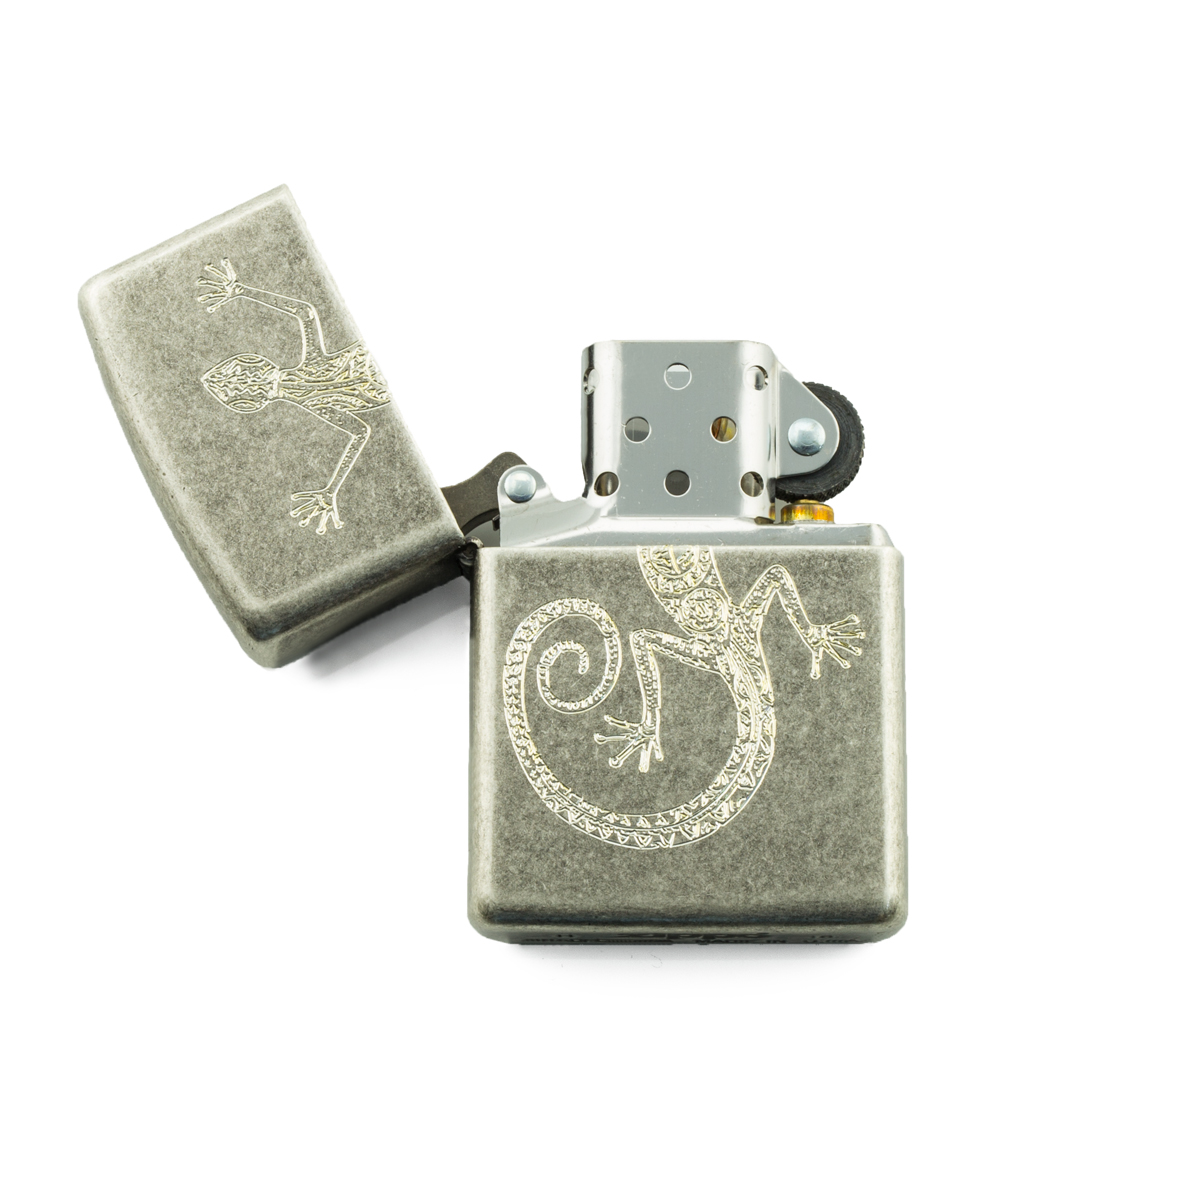 zippo-bac-co-antique-khac-hoa-van-than-lan-3